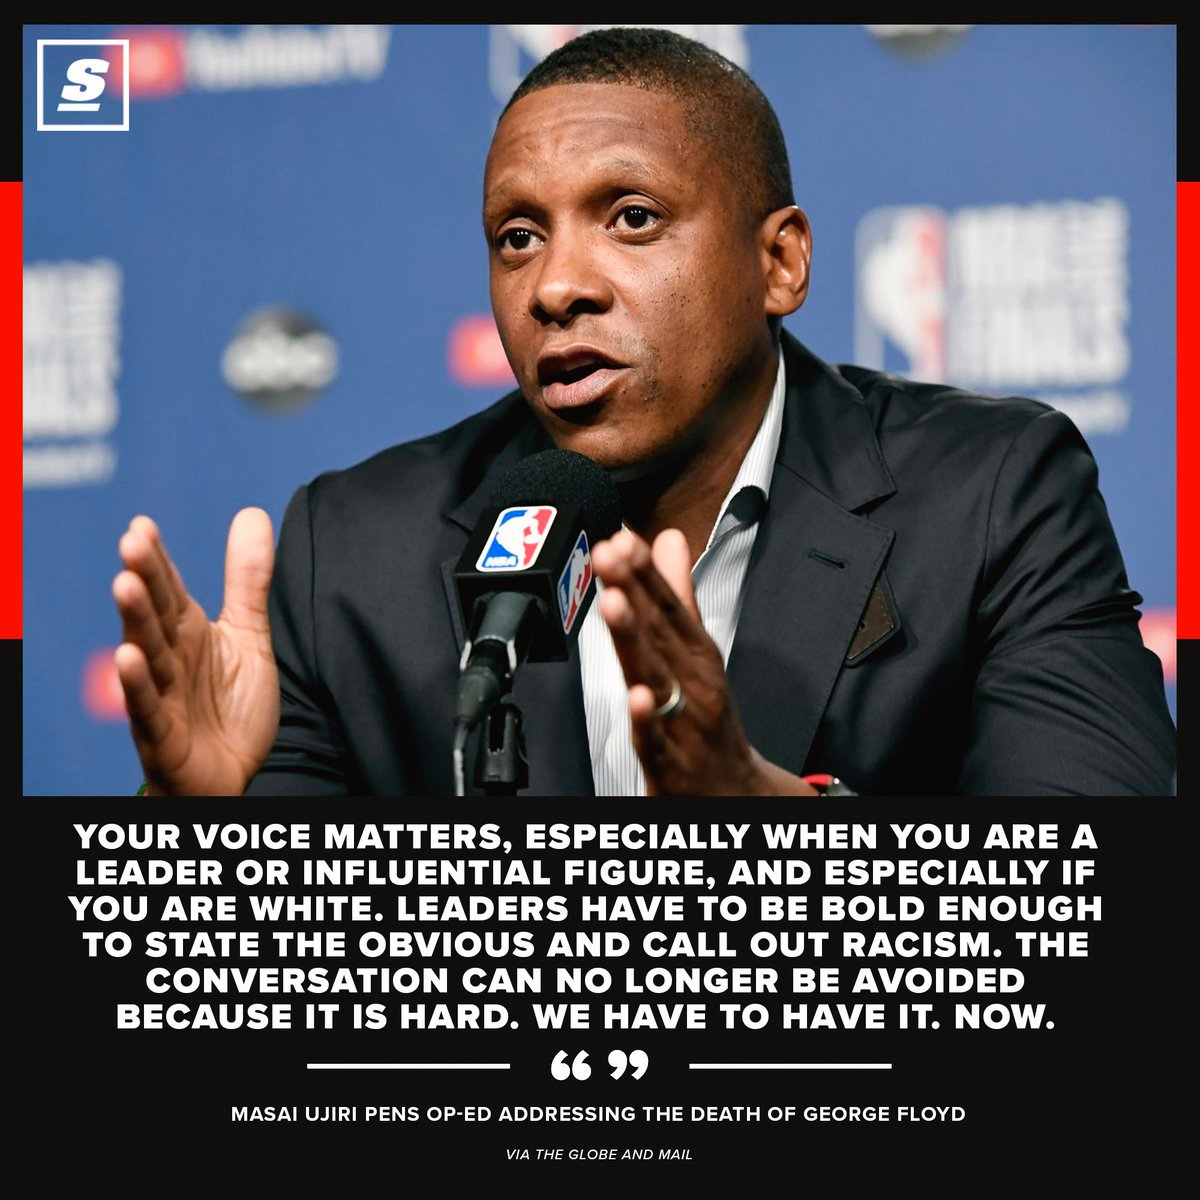 Masai Ujiri penned a powerful editorial in response to the death of George Floyd. ❤️